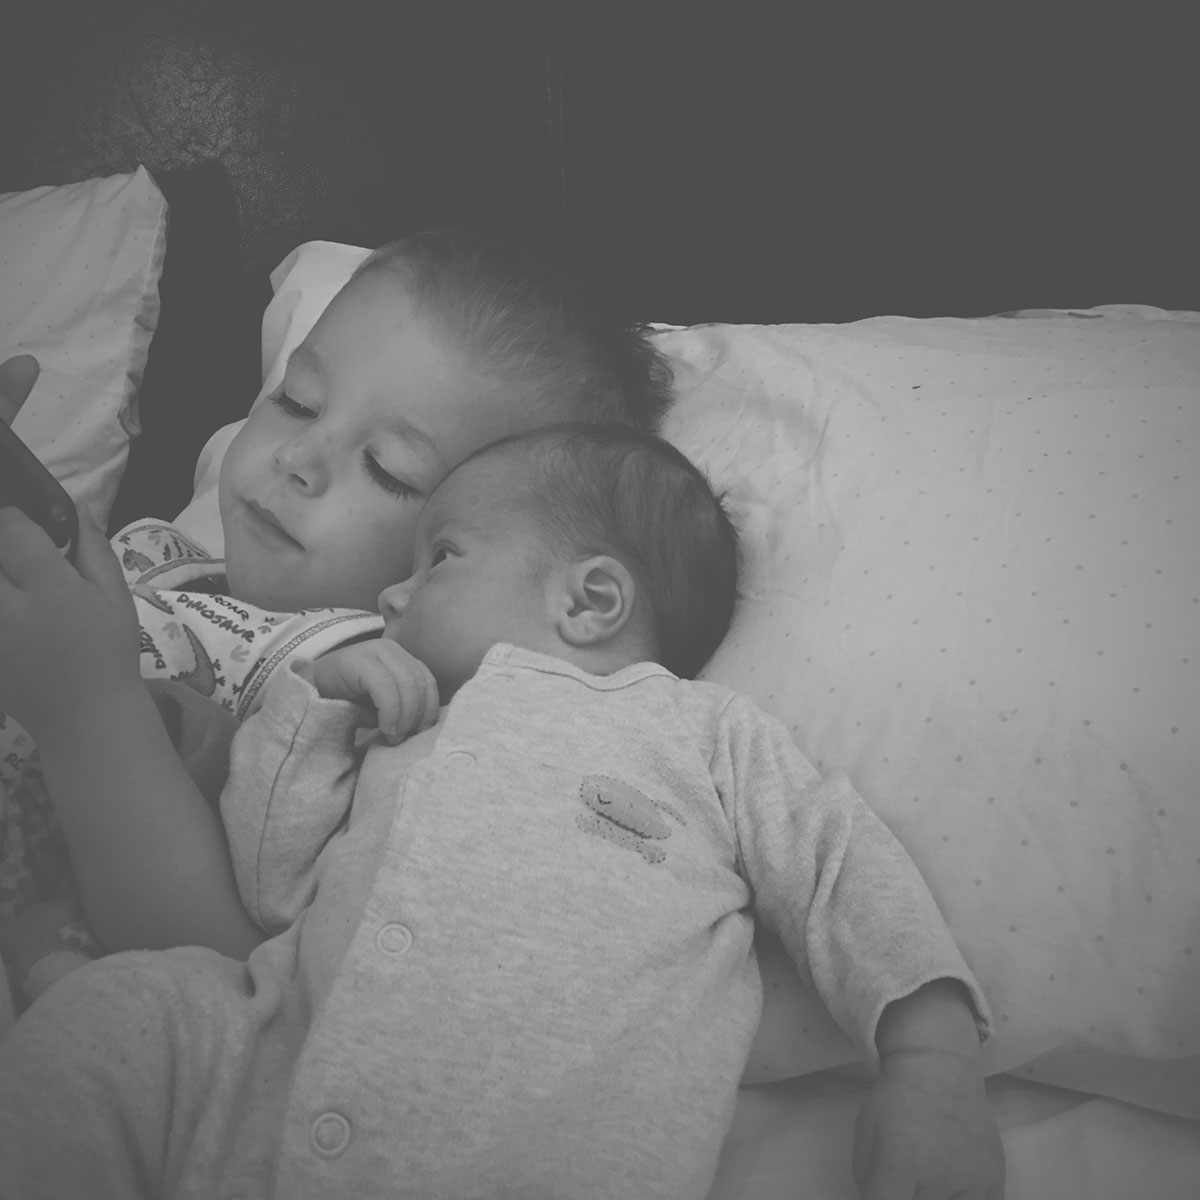 Our month in insta-snaps; August 2016 - Toddler and his new baby brother watching a video in bed